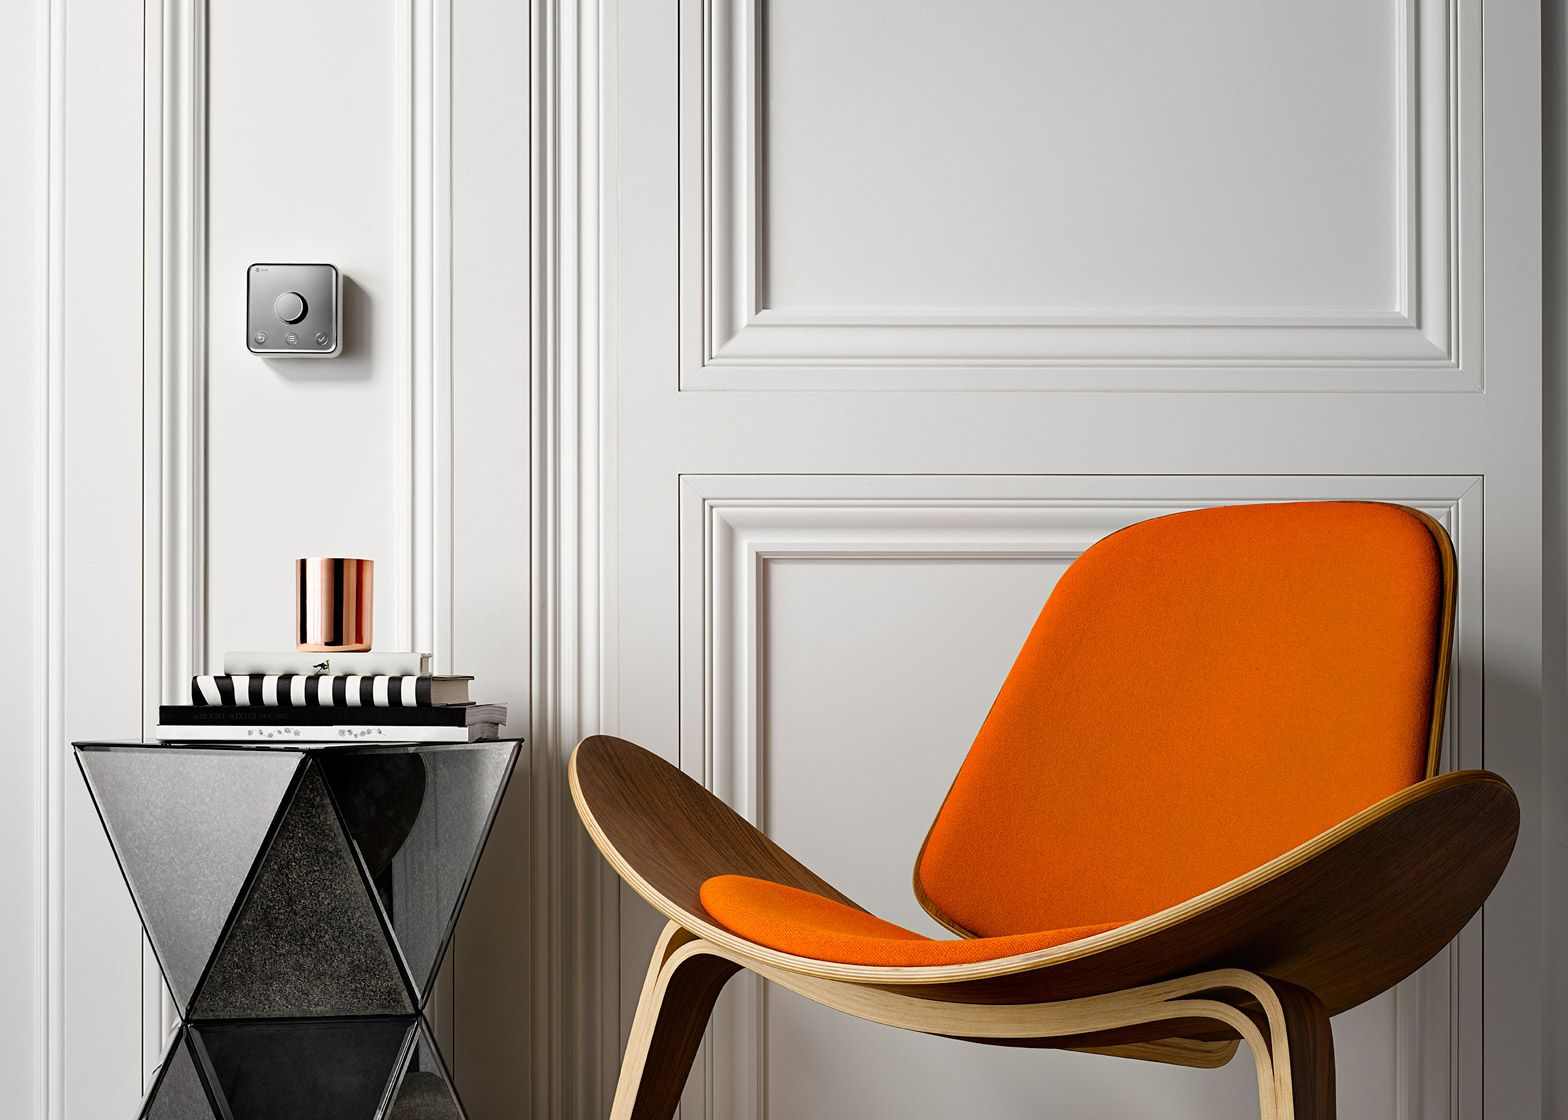 http://www.dezeen.com/2015/12/21/competition-hive-active-heating-system-yves-behar/?utm_medium=email